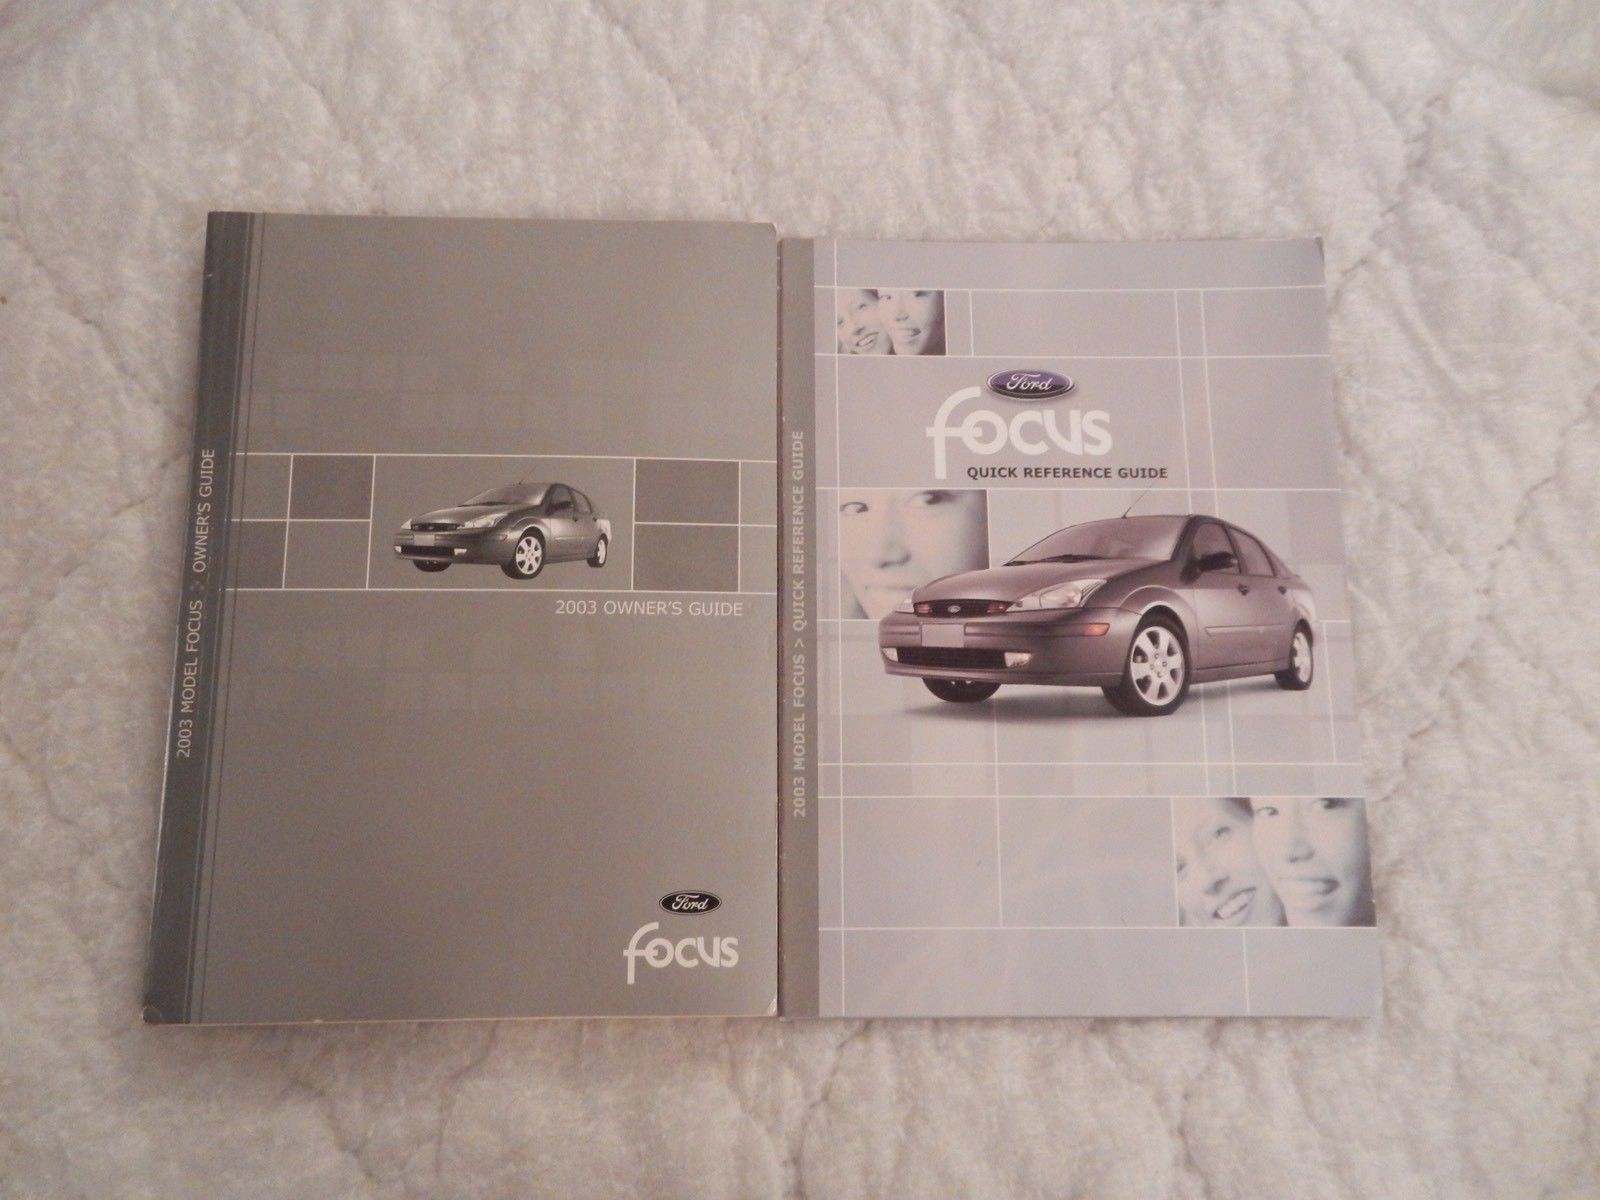 2003 ford focus owners manual with binder and 50 similar items rh bonanza com ford focus owners manual 2013 ford focus owners manual 2015